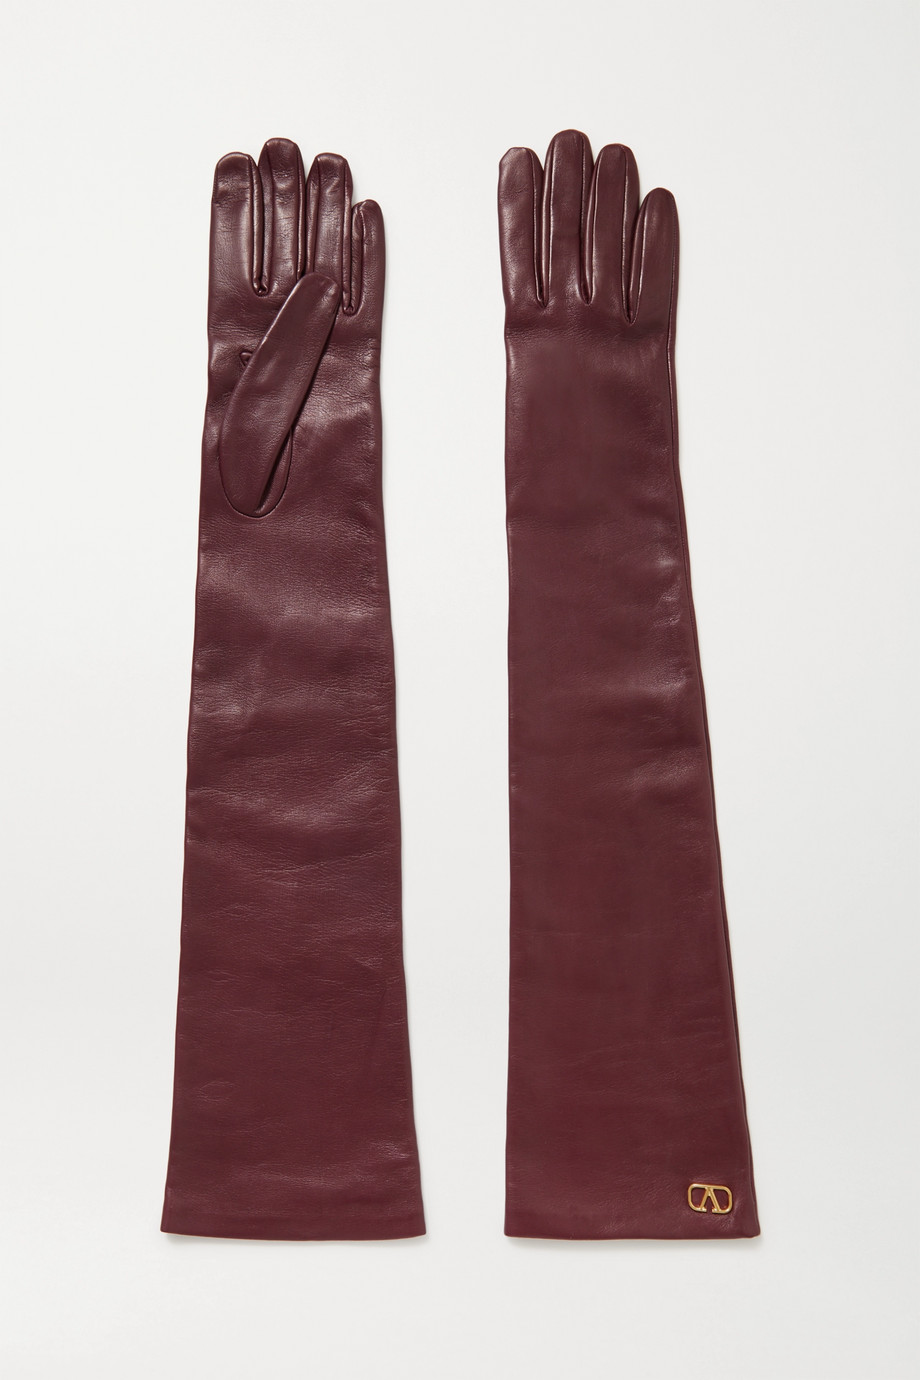 Valentino Valentino Garavani embellished leather gloves